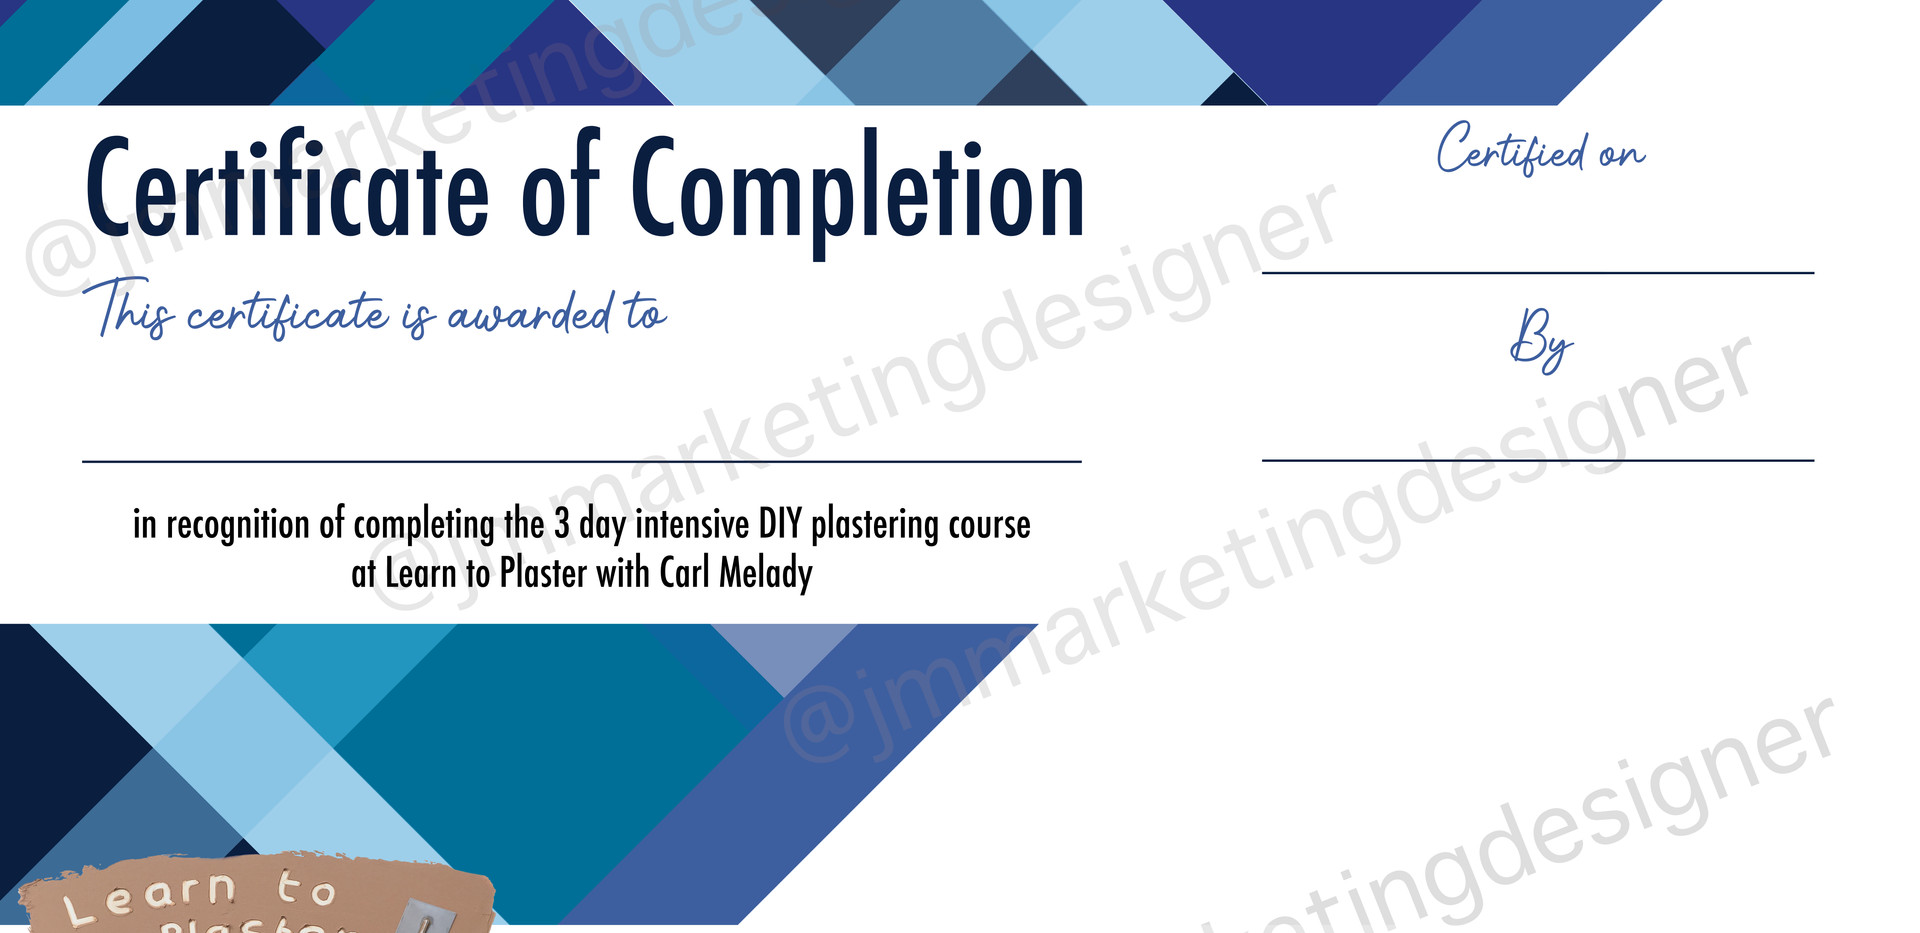 Learn to Plaster with Carl Melady certificate design